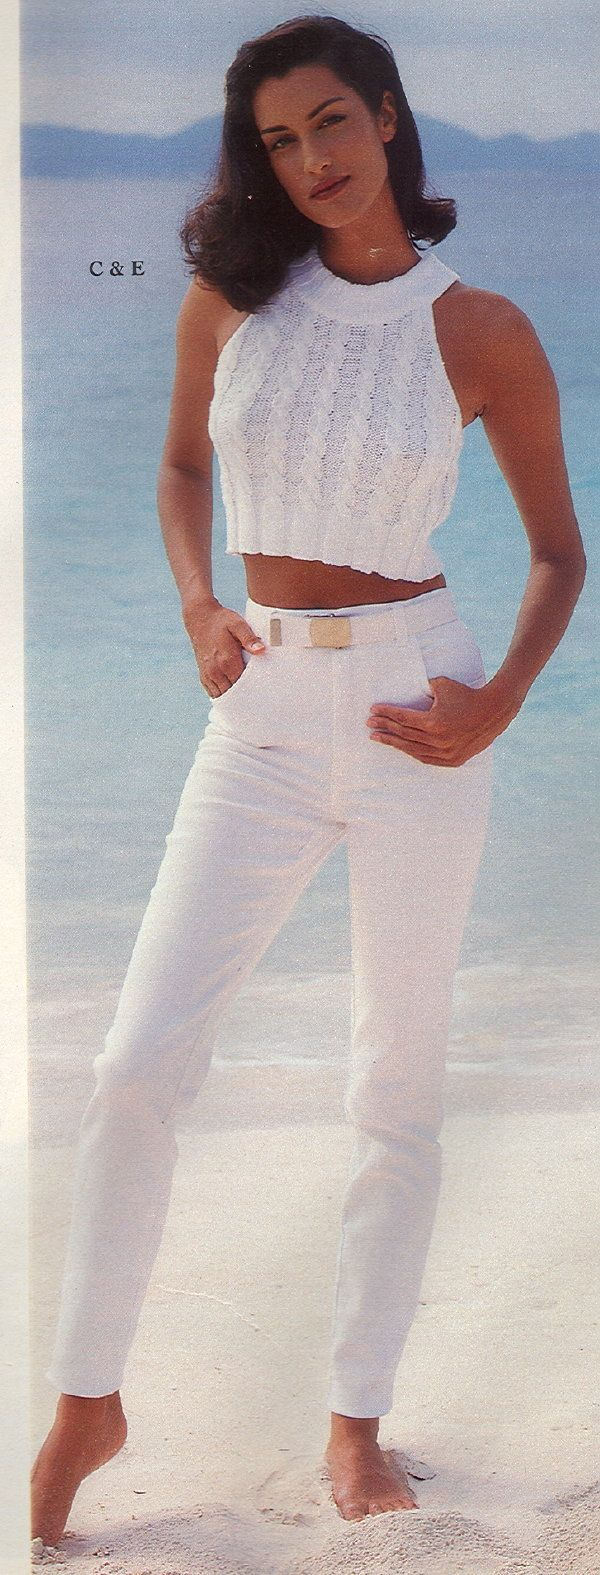 Victoria's Secret Catalog Spring 1996 page featuring Yasmeen Ghauri as model. Yasmeen became a Victoria's Secret model in 1992, and walked the 1996 annual Victoria's Secret Fashion Show.